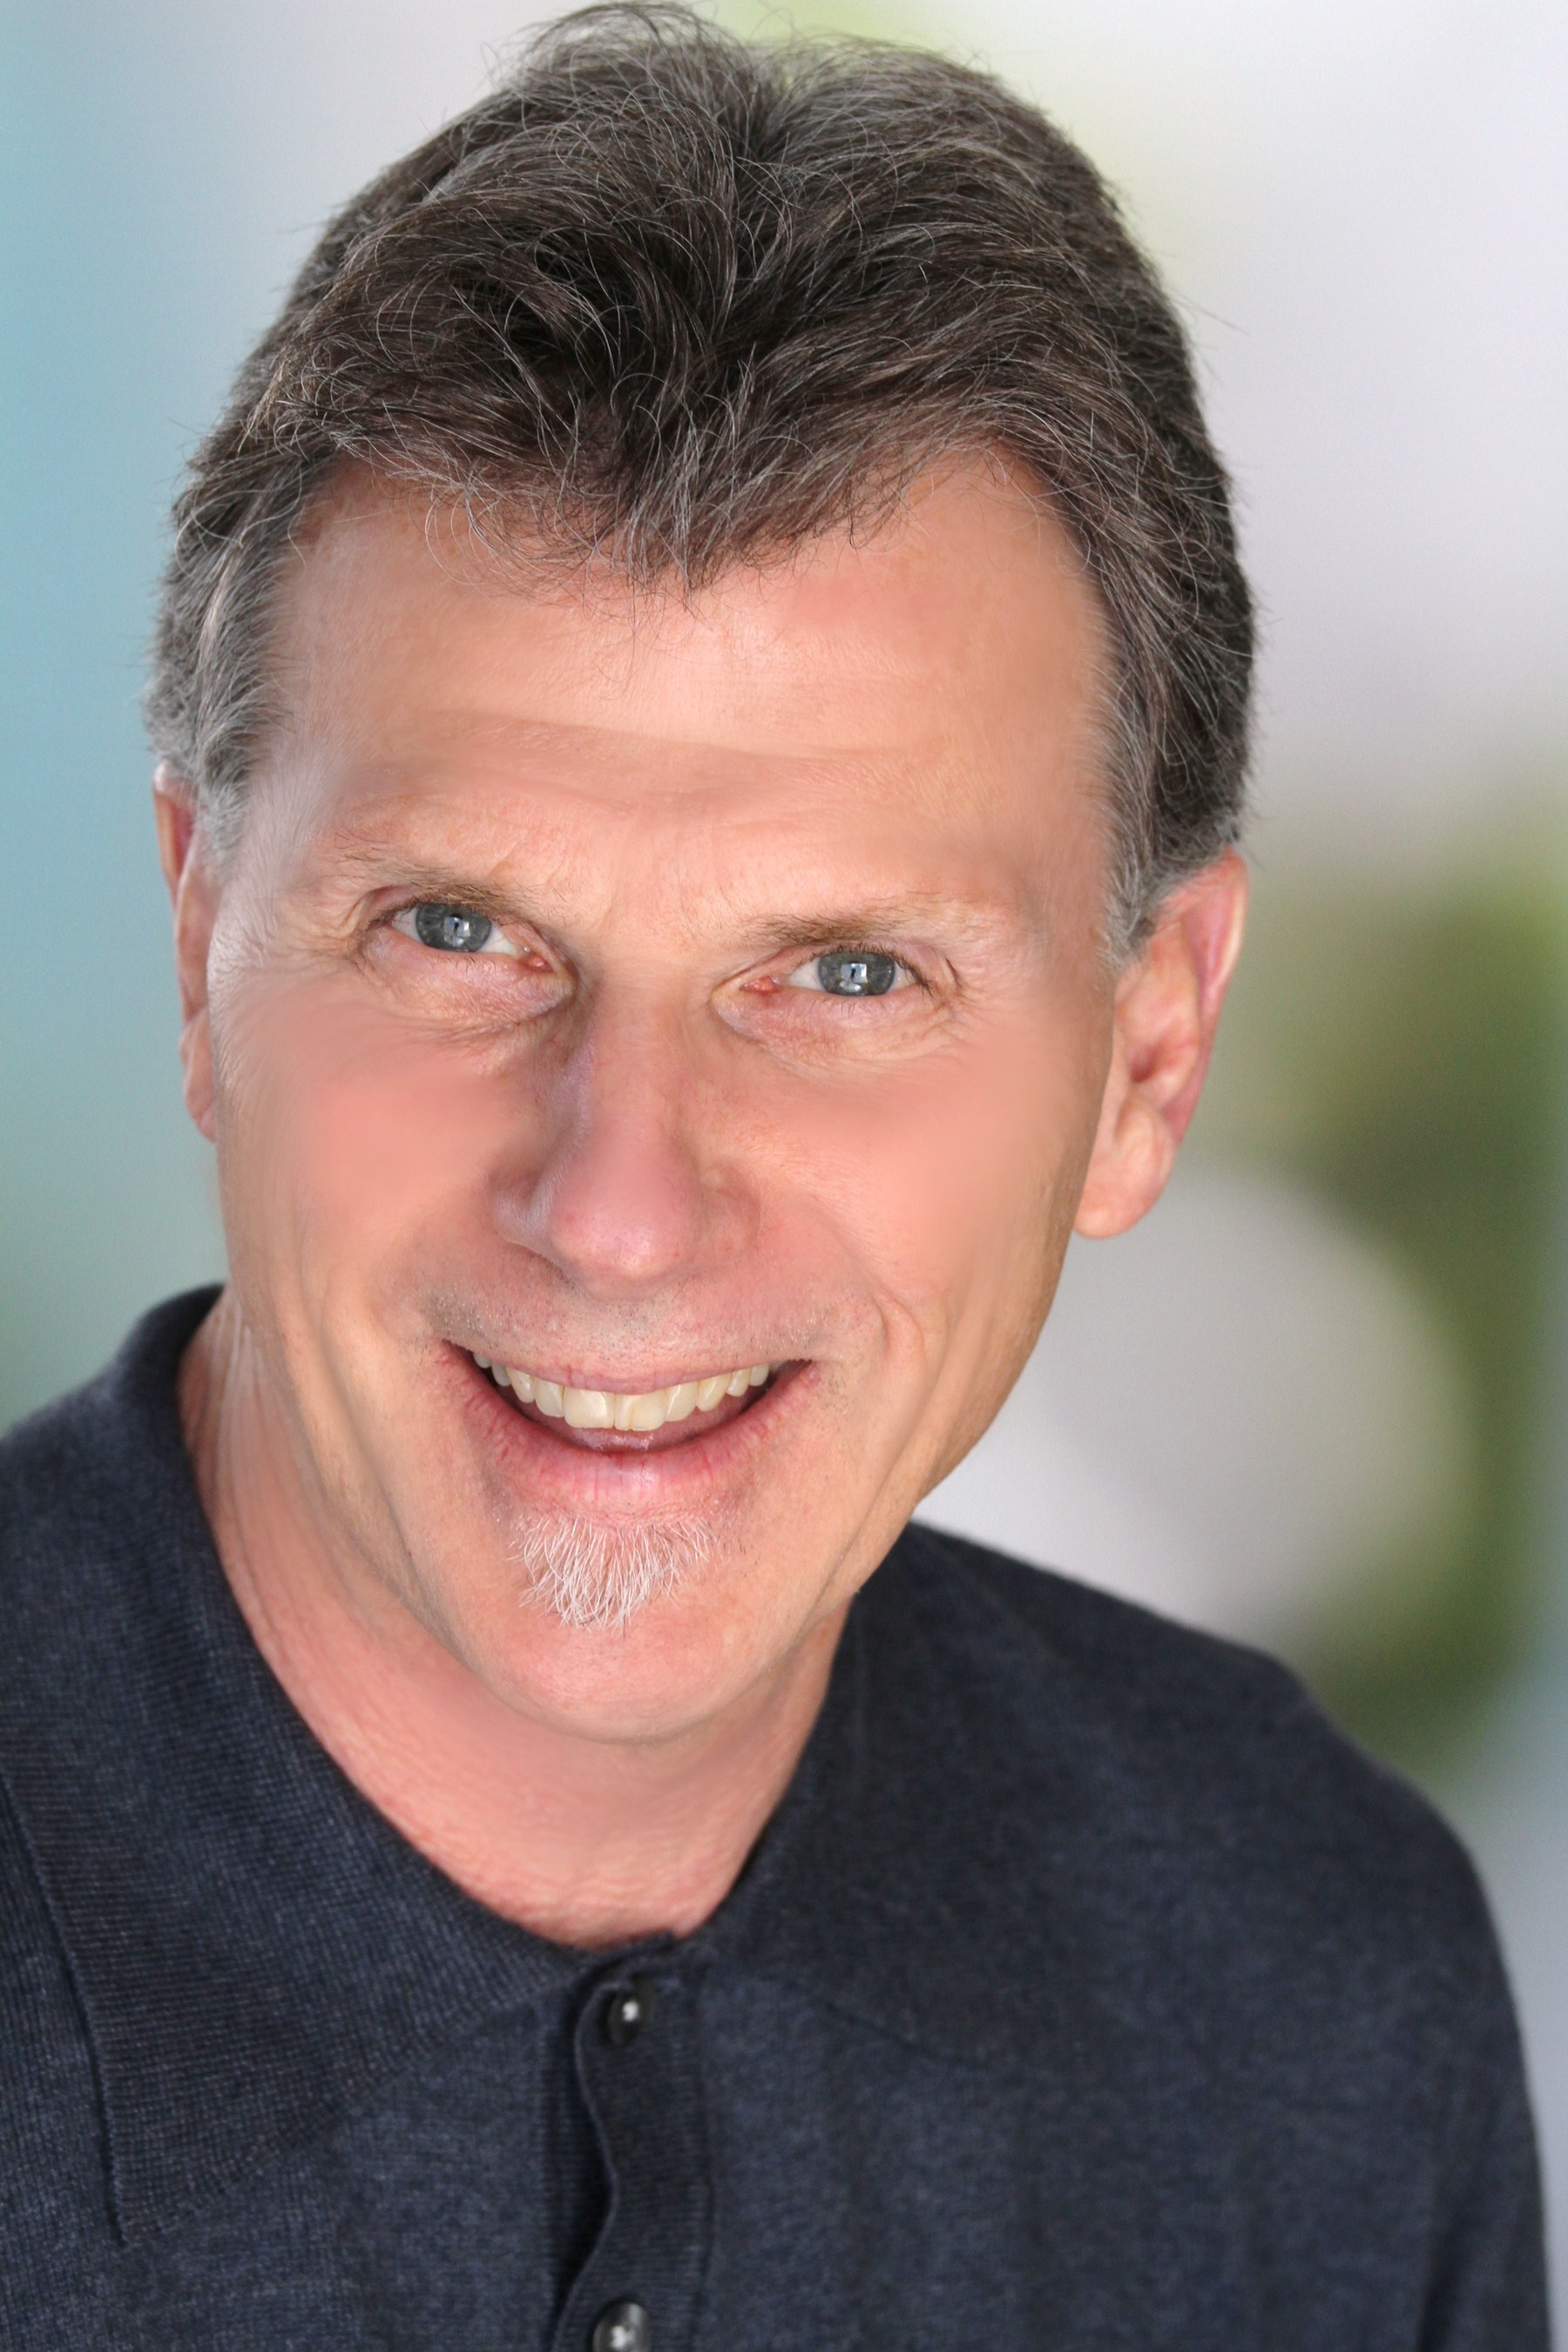 Gary Henson, founder and president of BusinessCoach.com